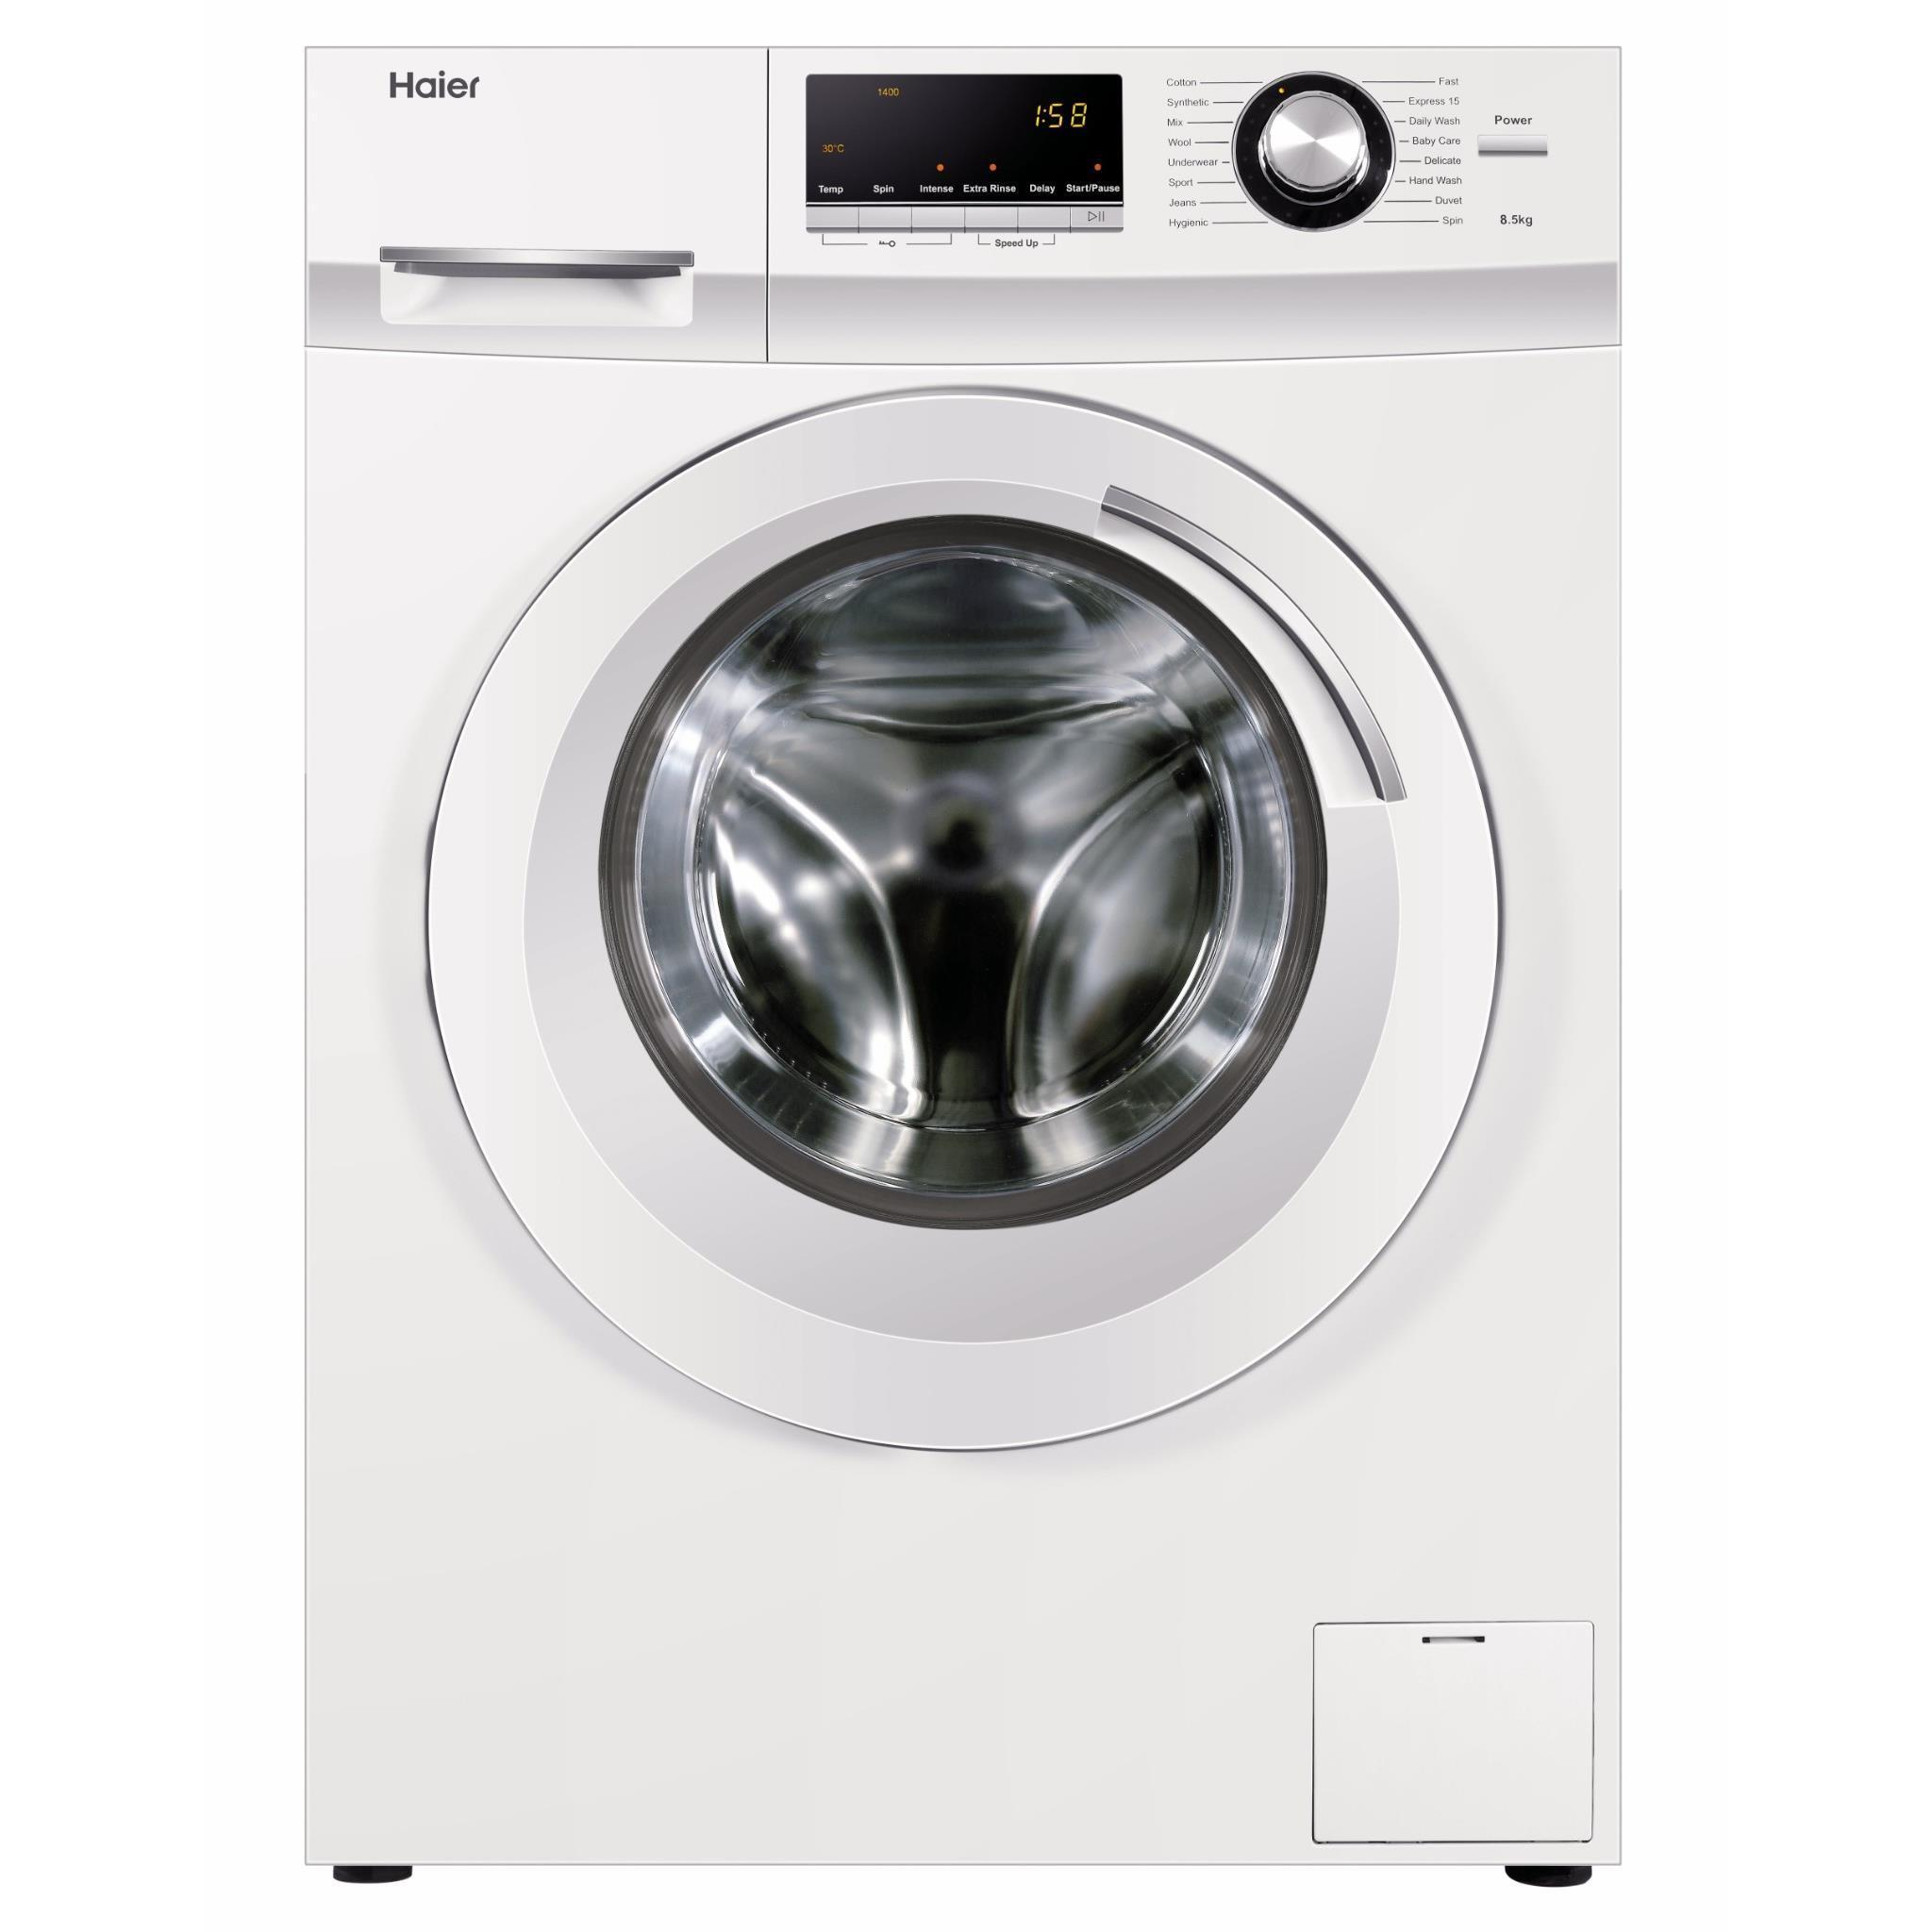 Haier HWF85BW1 8.5kg Front load Washing Machine